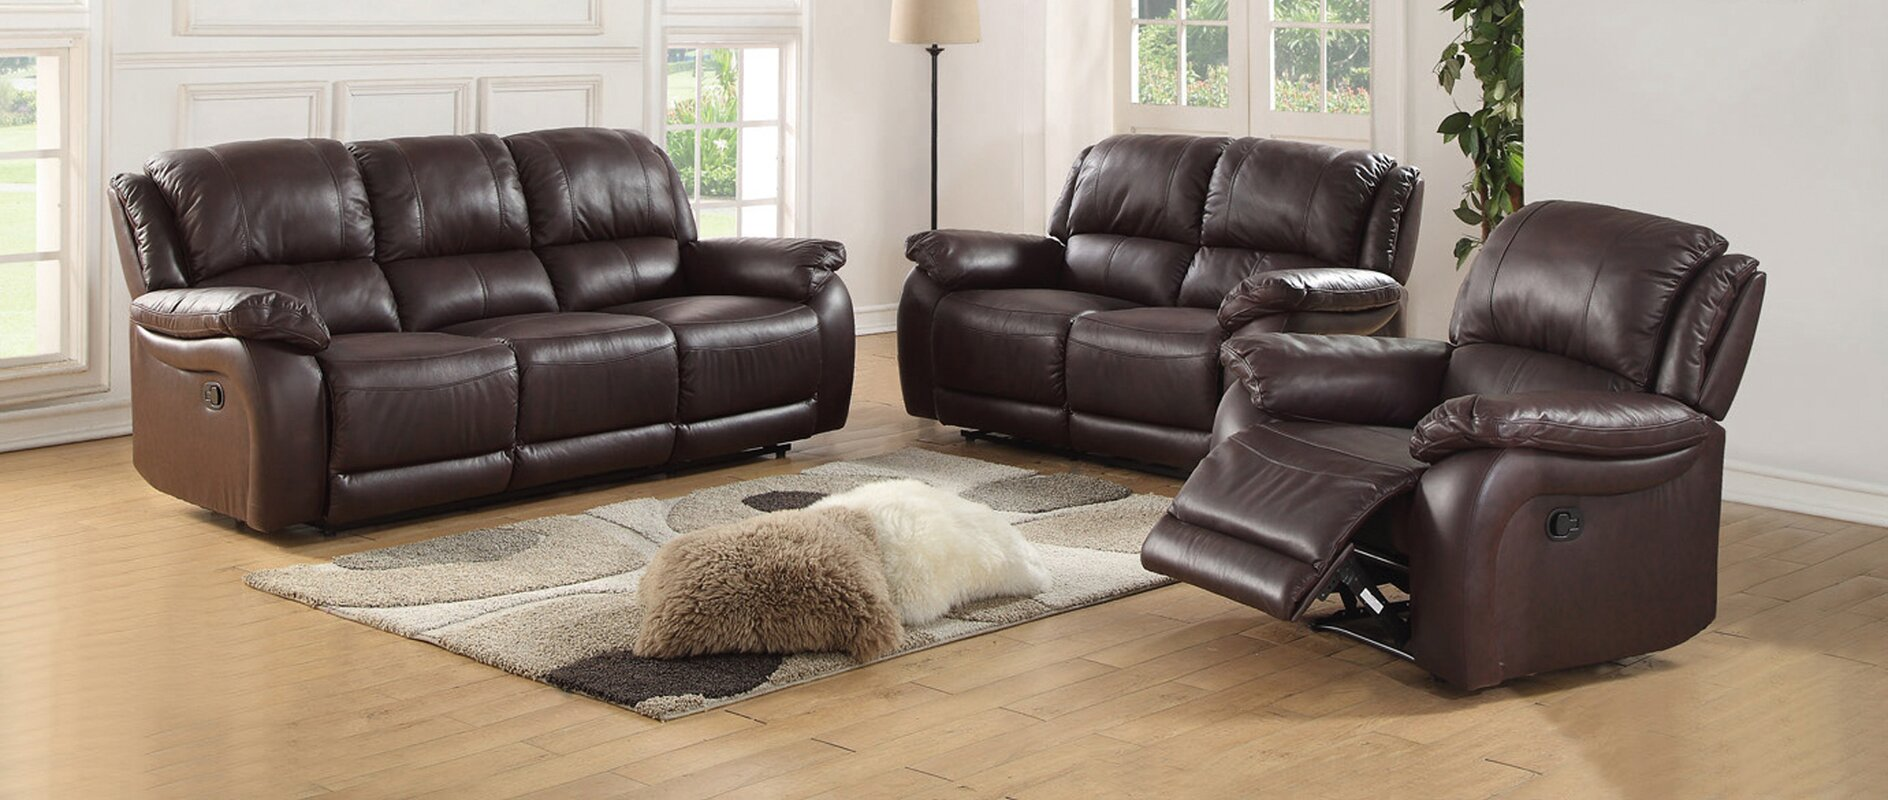 Latitude run juan 2 piece leather living room set reviews 2 piece leather living room set